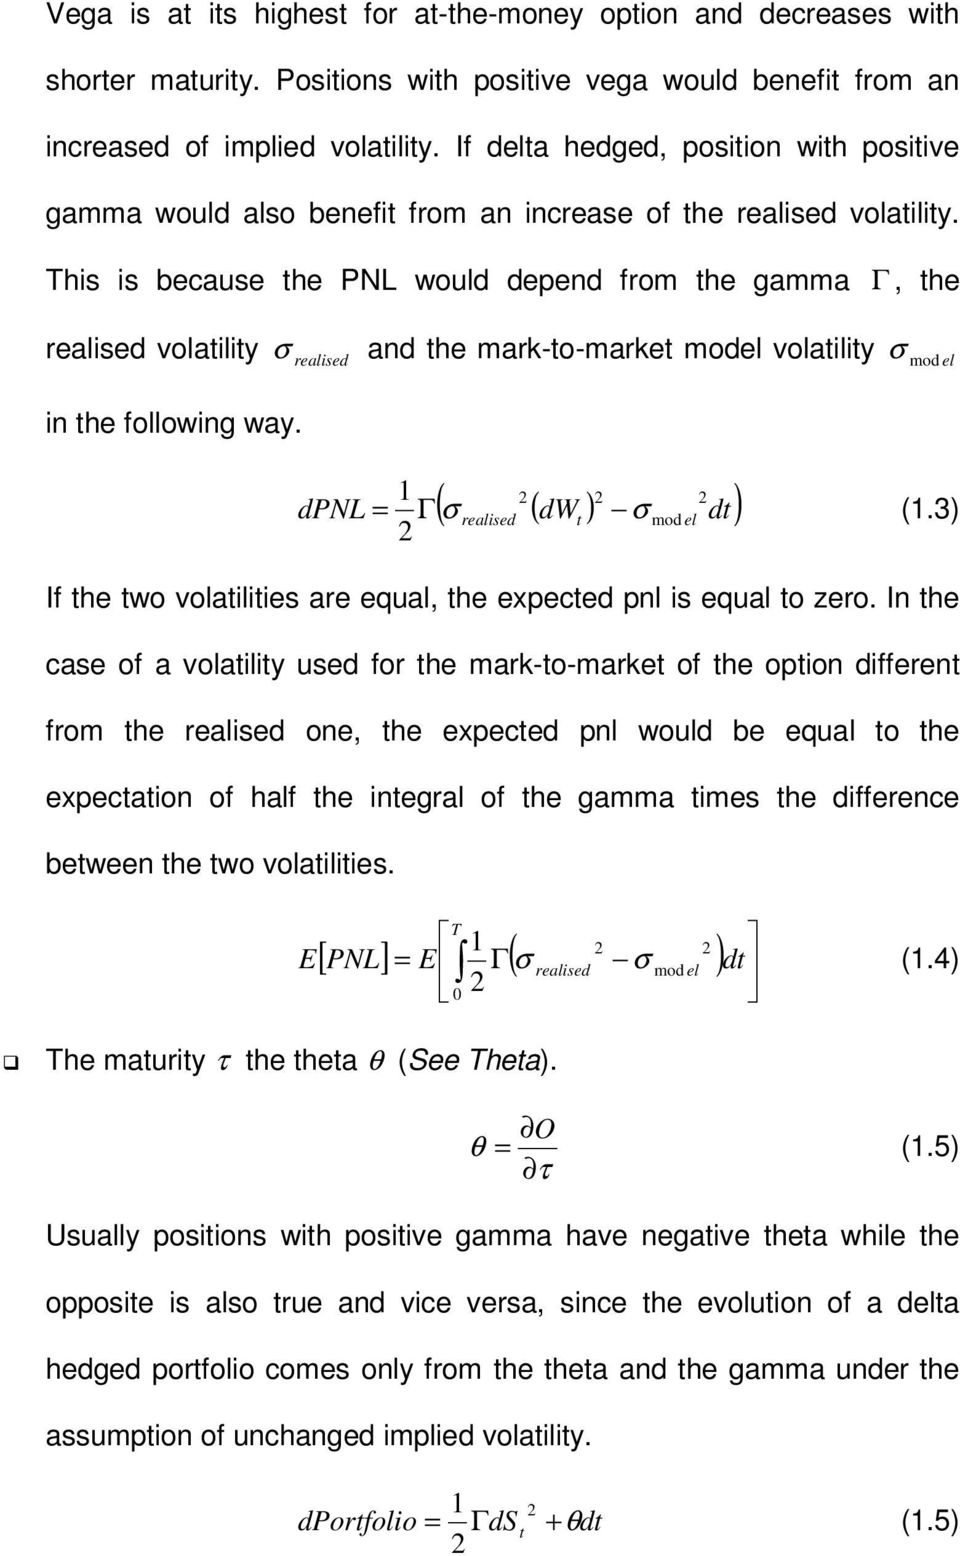 This is because the PNL would depend from the gamma Γ, the realised volatility σ realised and the mark-to-market model volatility σ mod el in the following way.